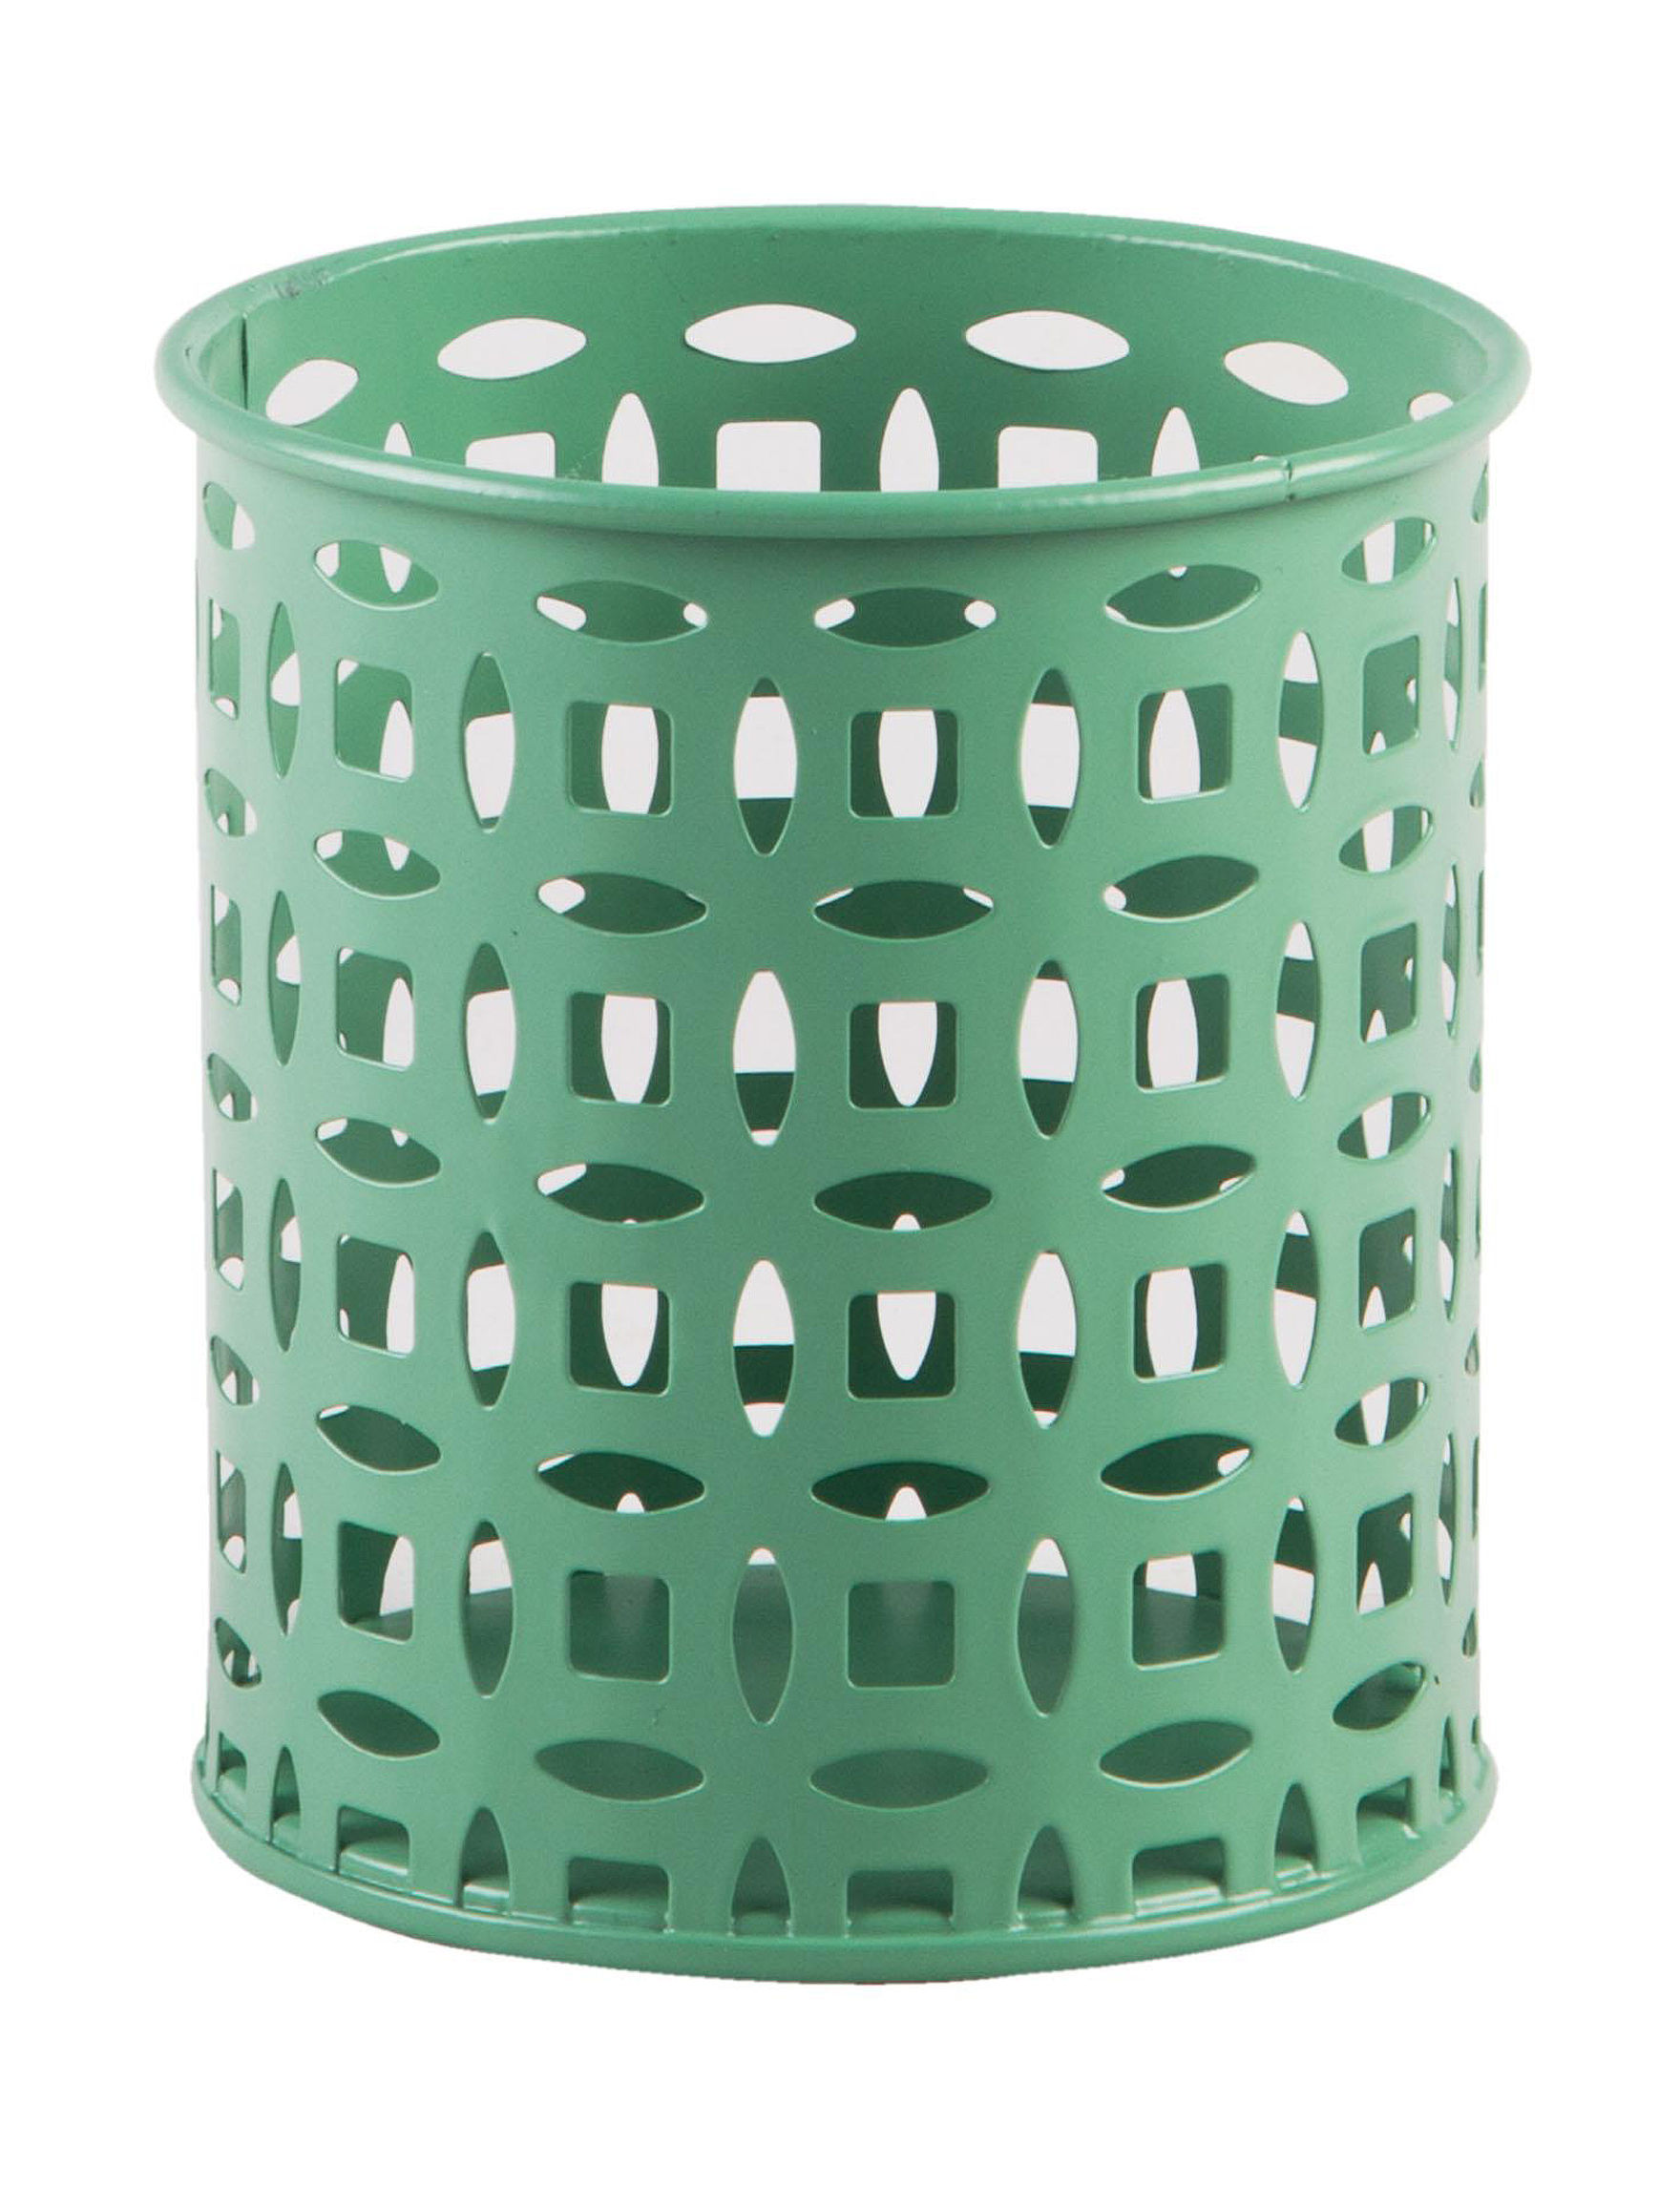 Home Essentials Green Decorative Objects Home Accents School & Office Supplies